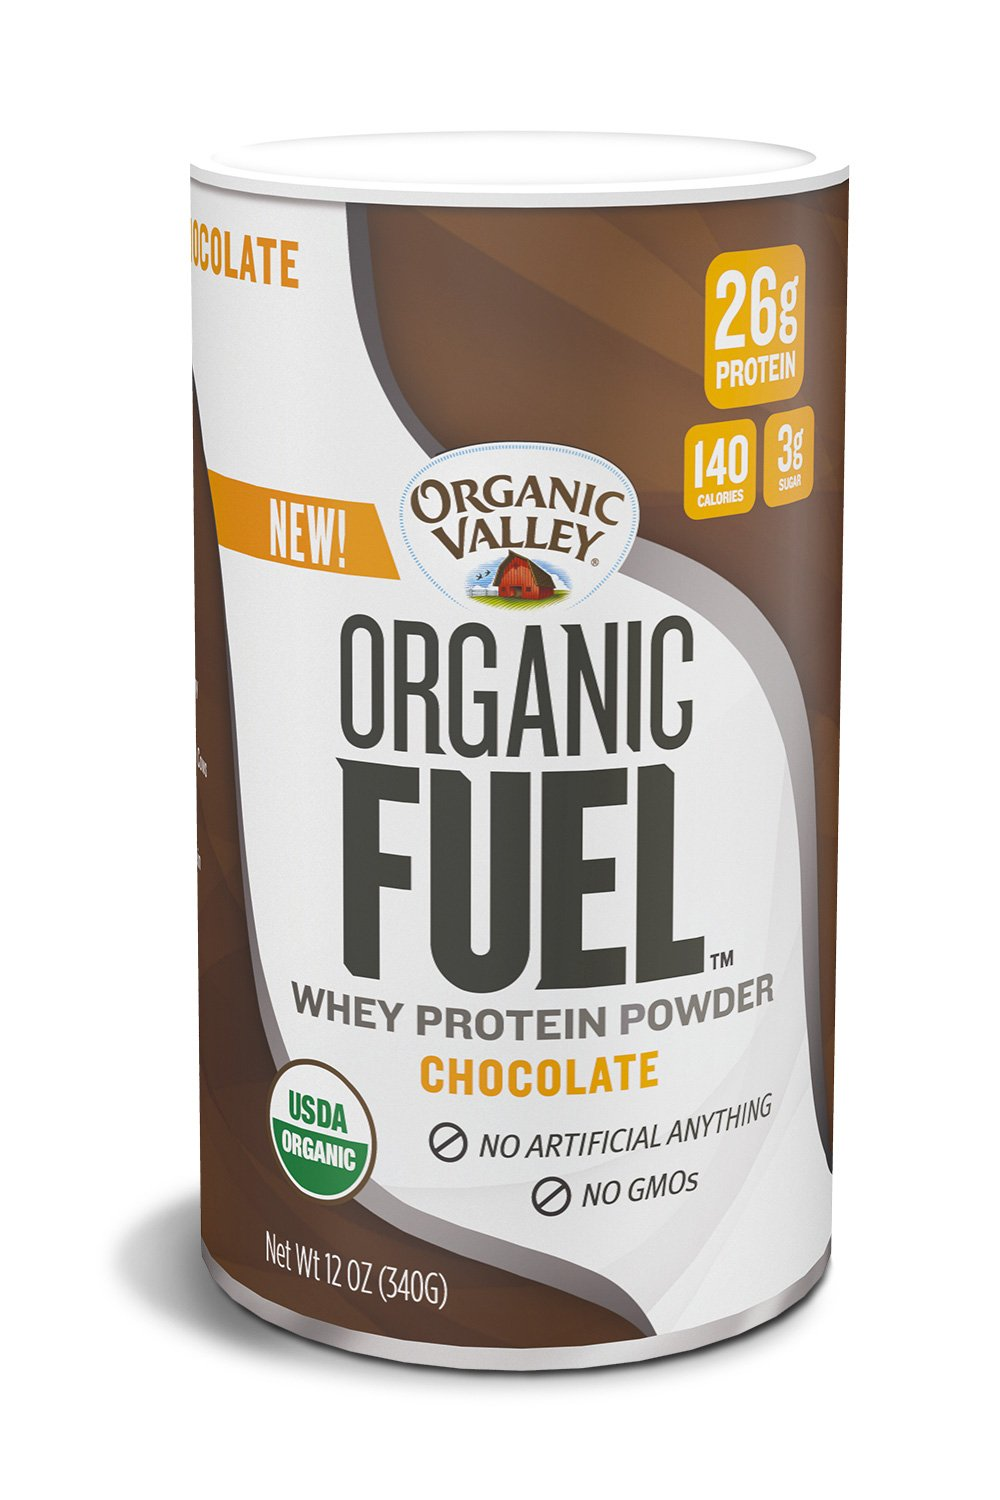 Organic Valley Fuel Whey Protein Powder, Chocolate, 12 oz